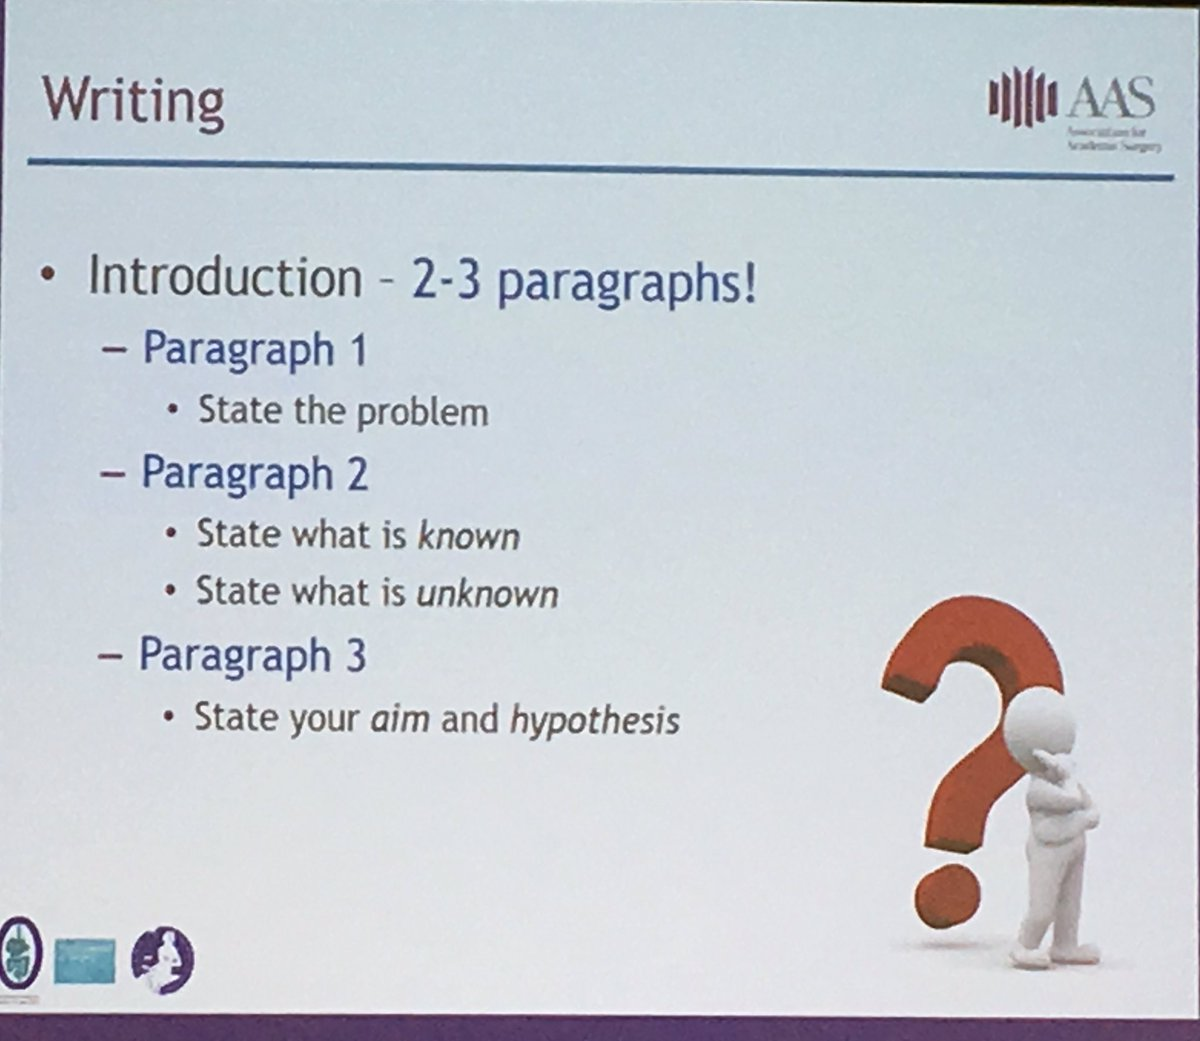 RT @jdimick1 &quot;How to write a paper in 4 slides by @kibbemr! @AcademicSurgery <br>http://pic.twitter.com/GMJ3XlOqNr&quot; #medcomms